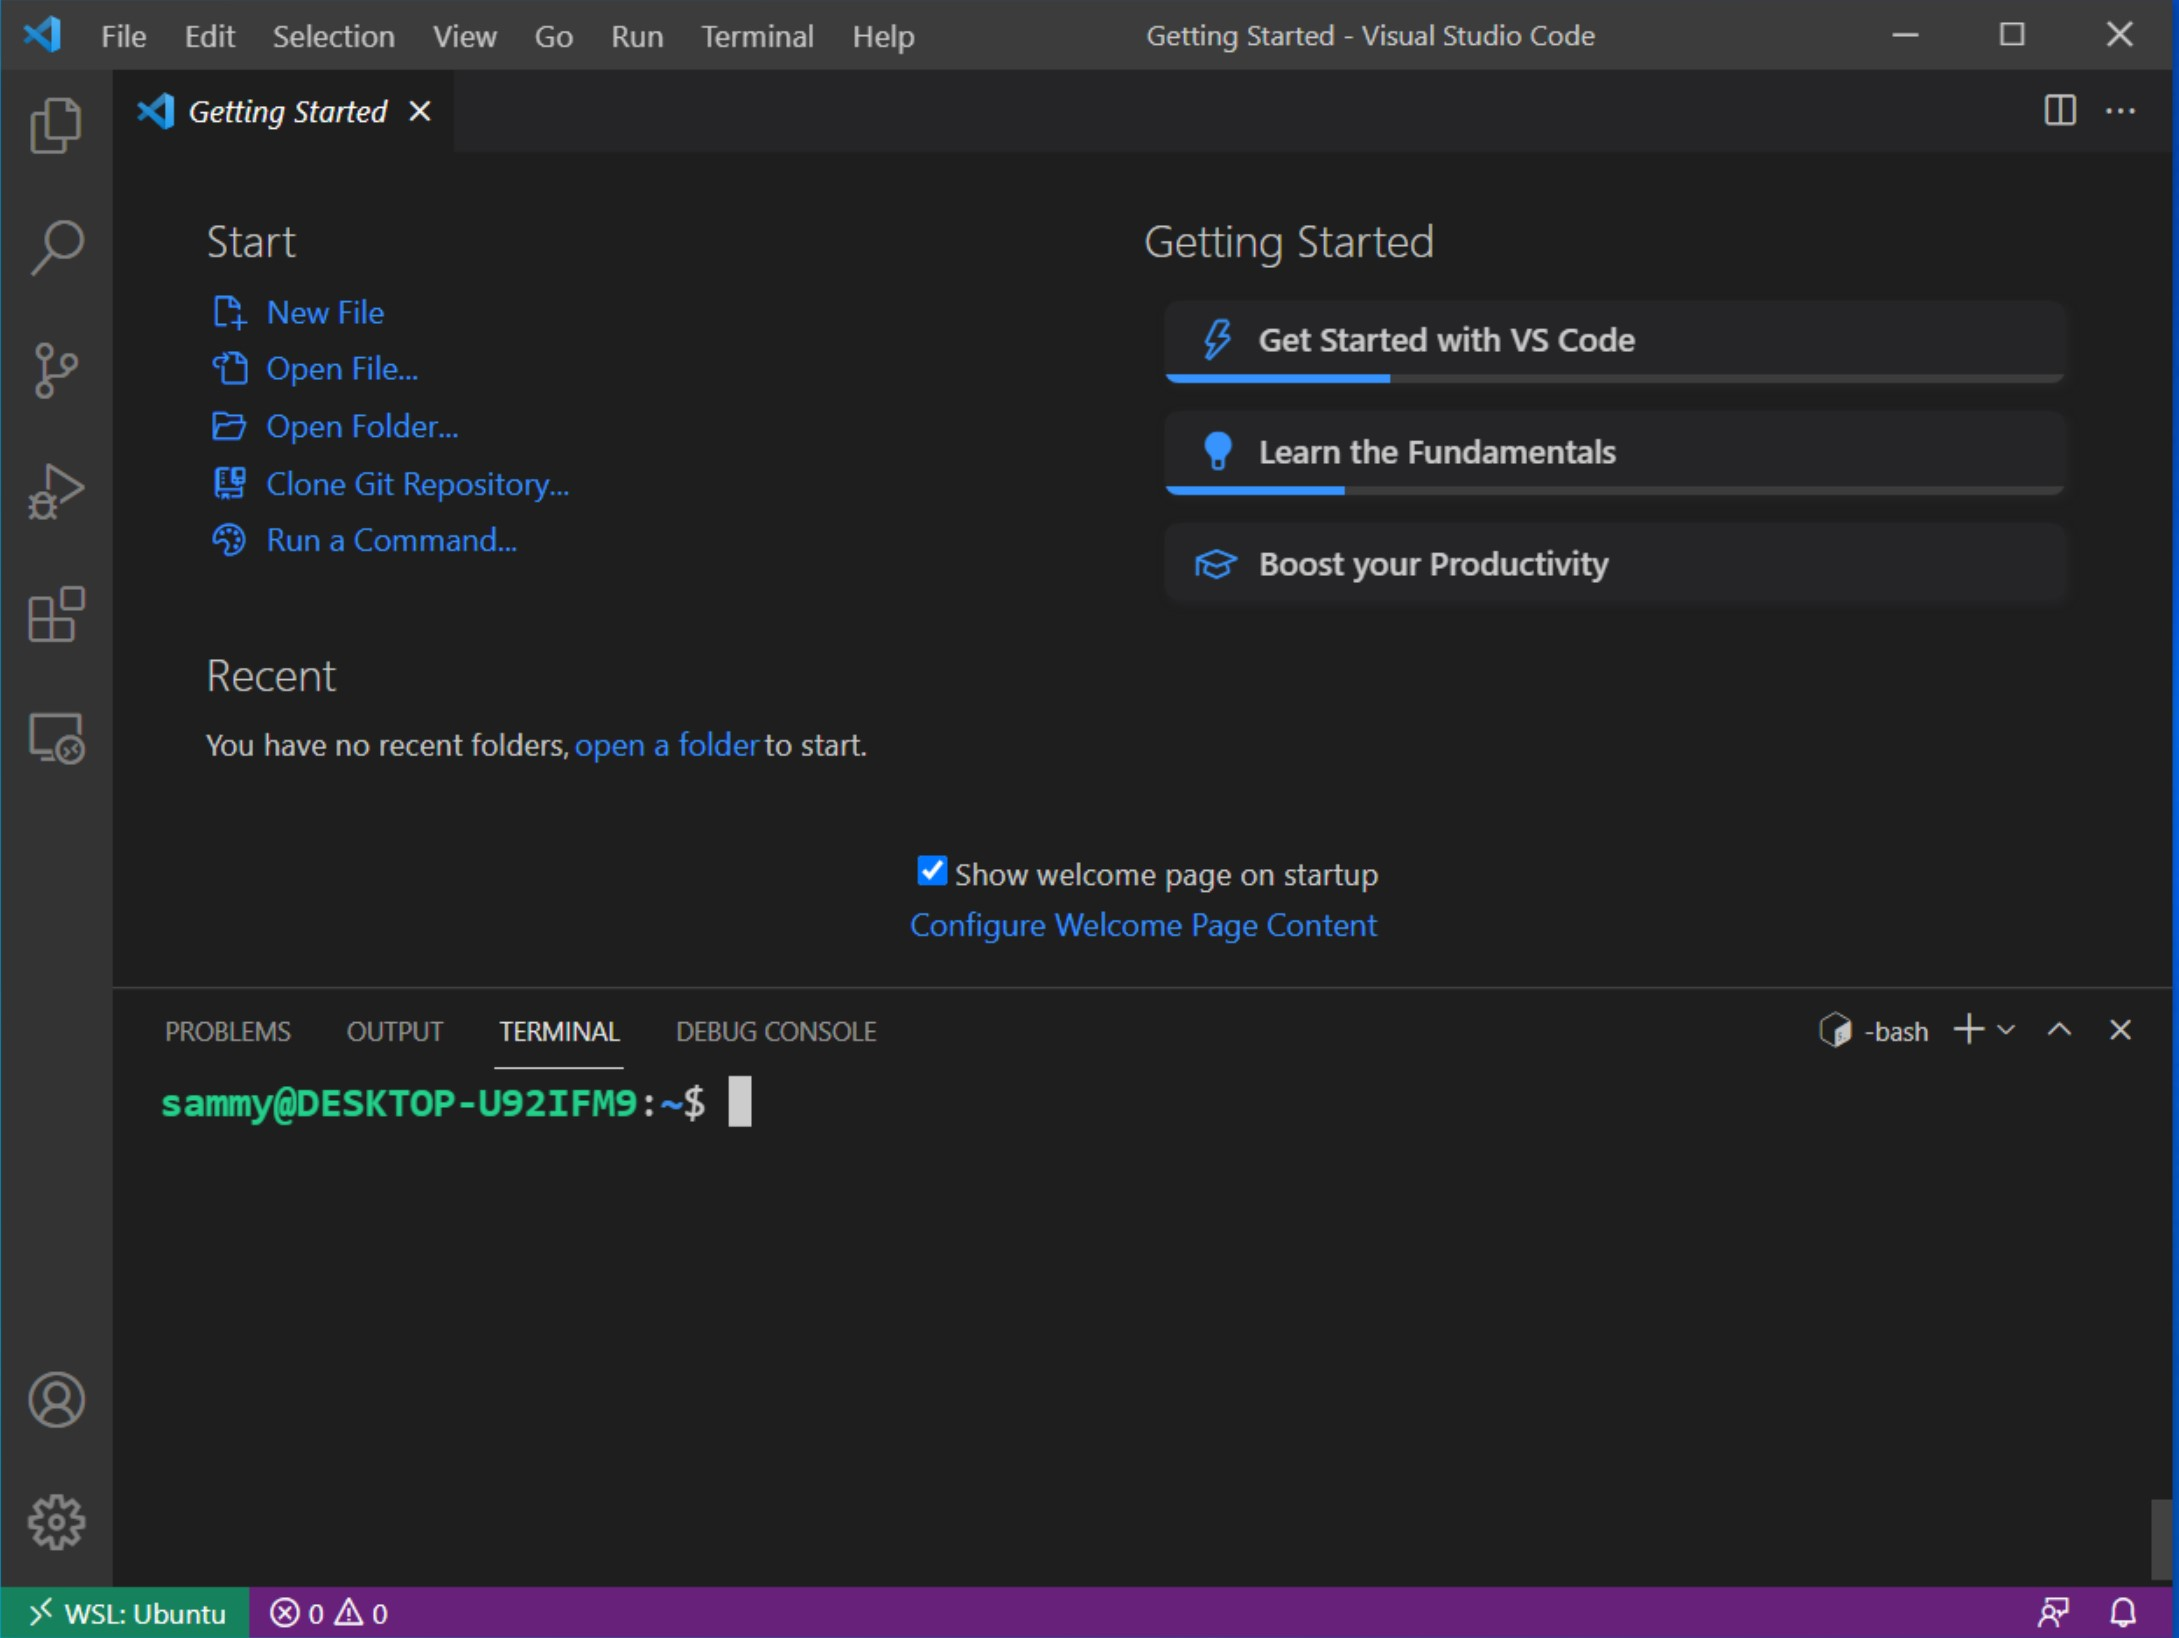 If you open a new terminal you'll open your Ubuntu terminal and be able to develop using VSCode directly in the WSL